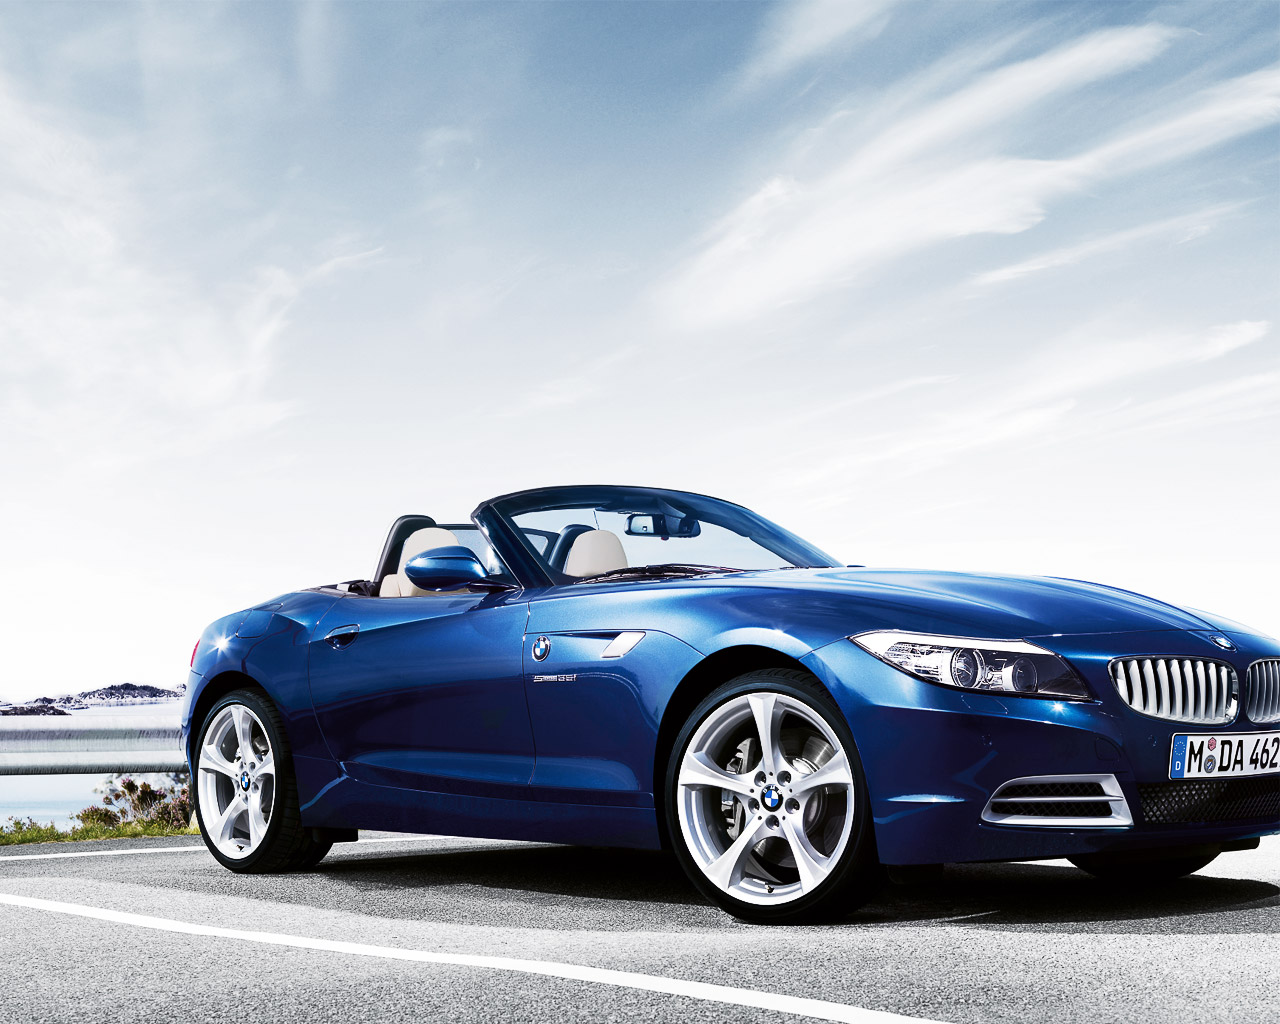 Top Gear Reviews The Bmw Z4 And Compares It Against The